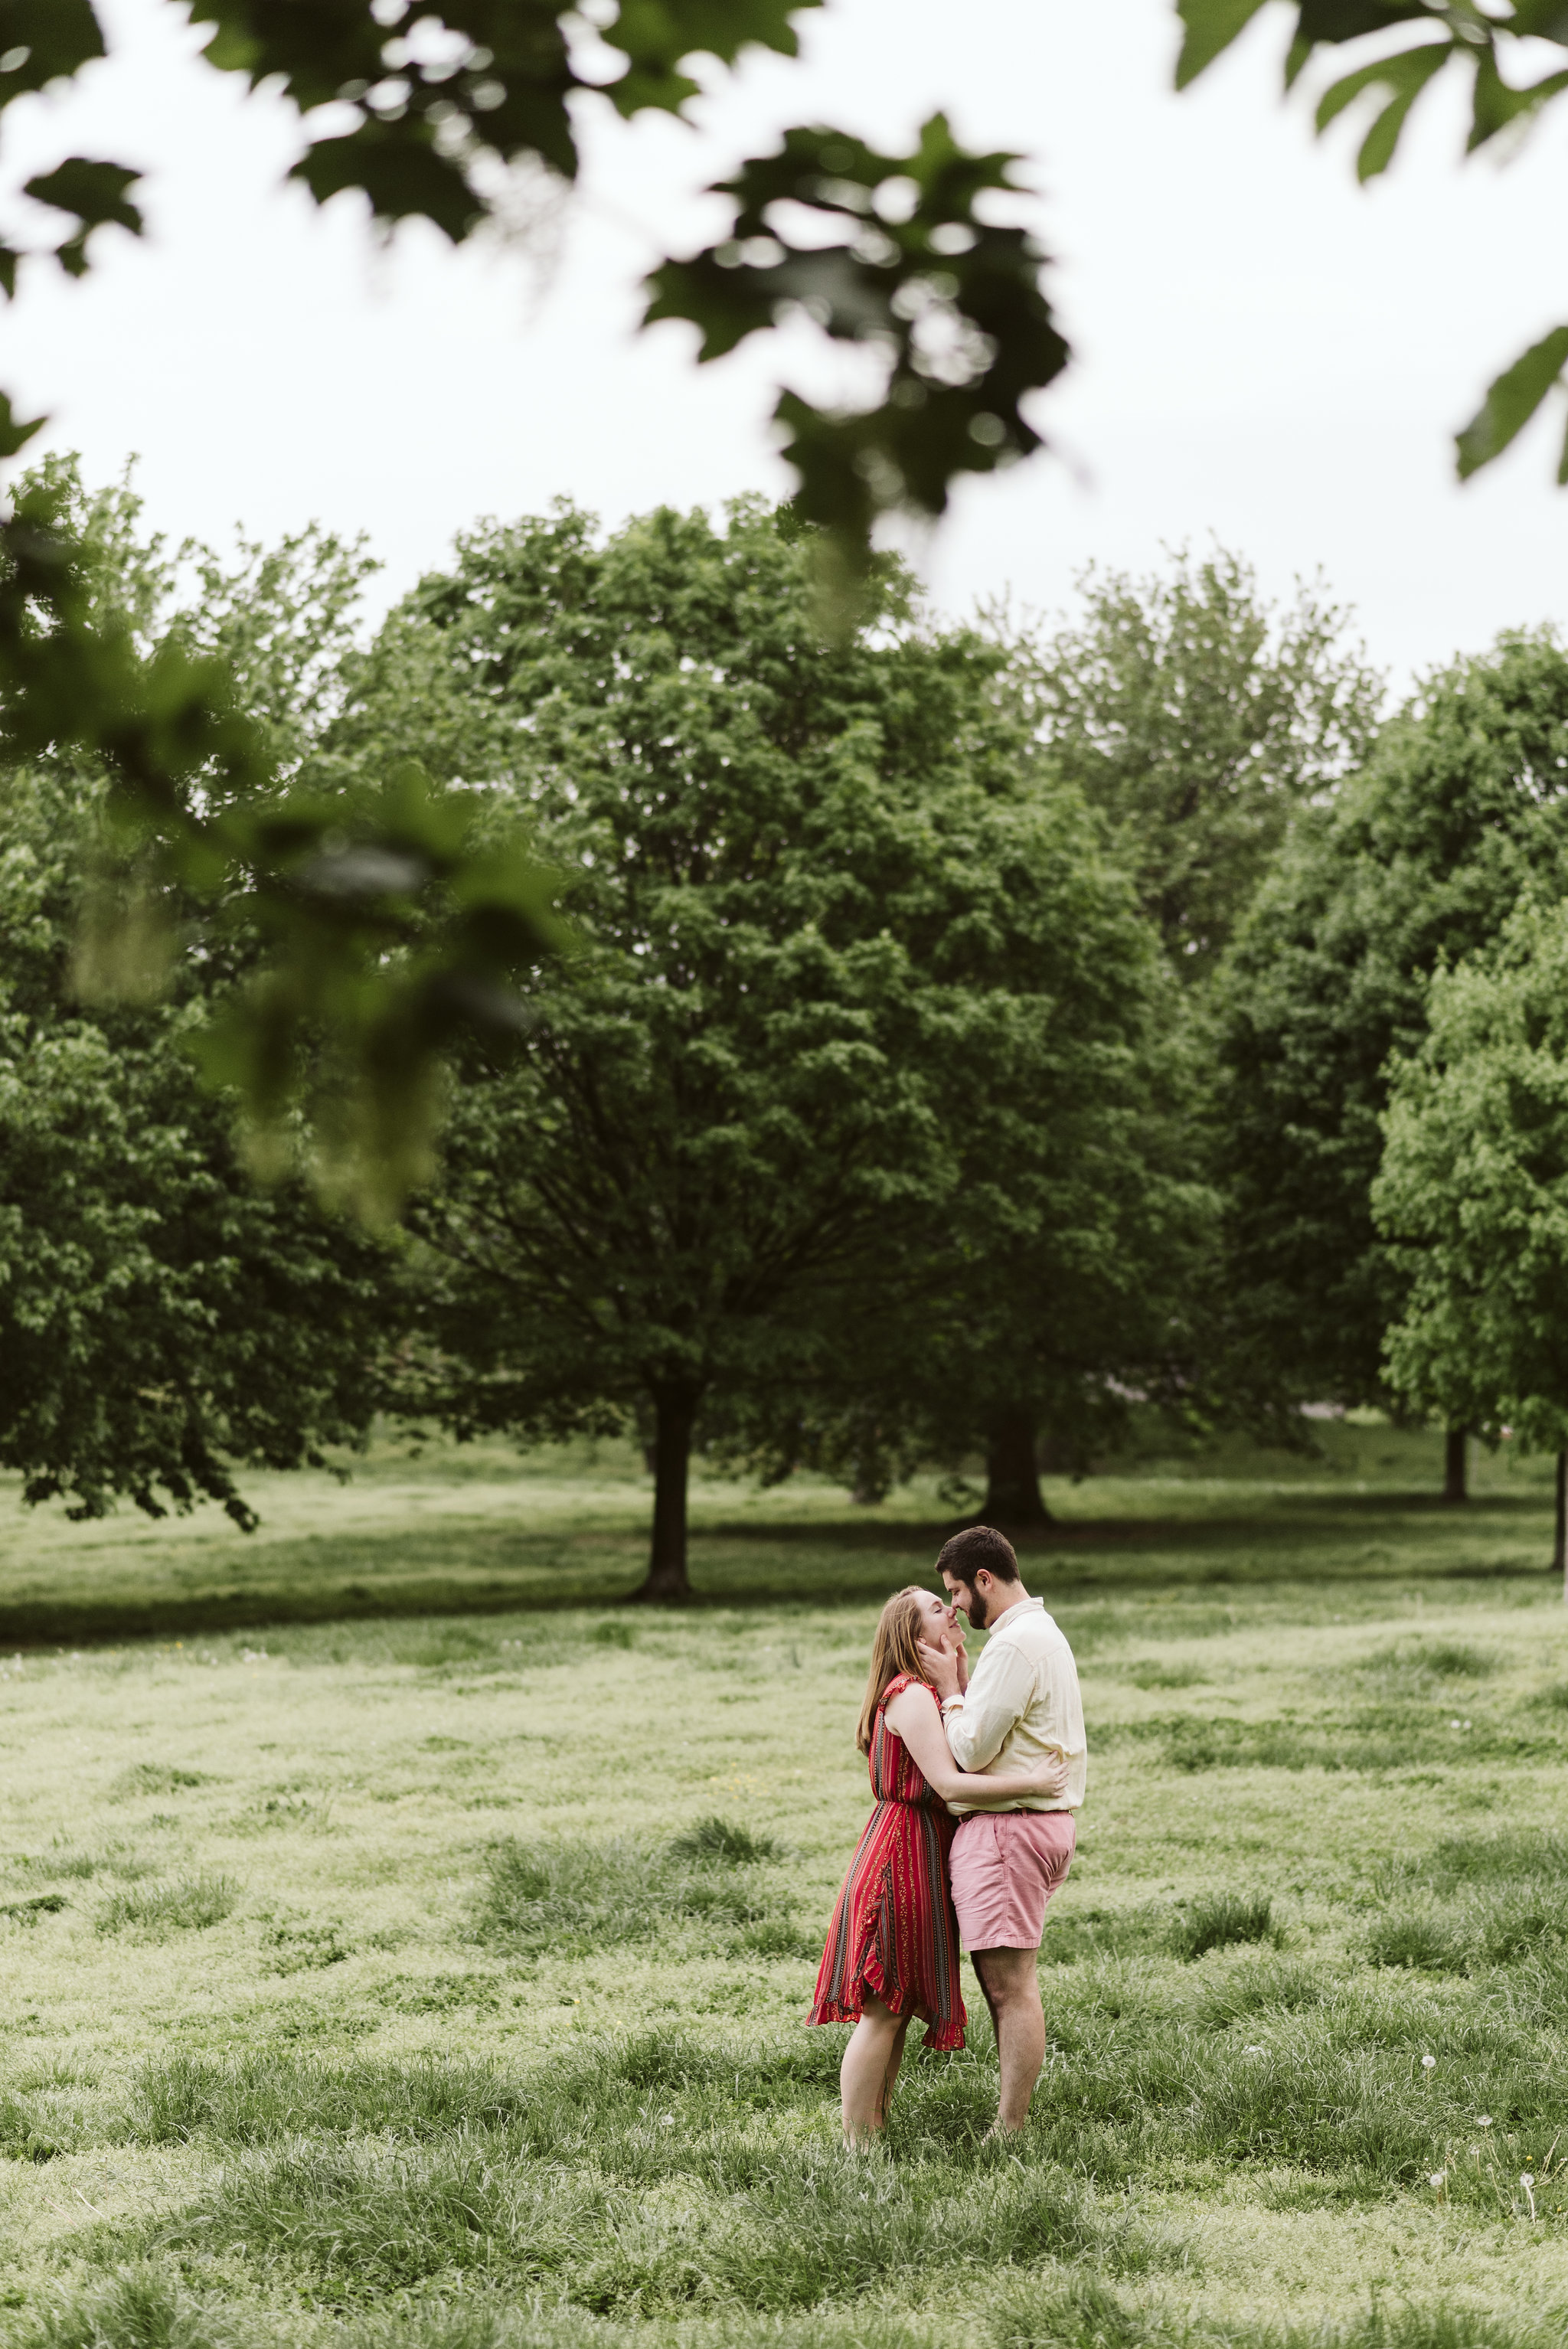 Engagement Photos, Patterson Park, Baltimore, Maryland Wedding Photographer, Casual, Fun, Nature, Bride and Groom Holding Each Other in a Field, Sweet Photo pf Couple